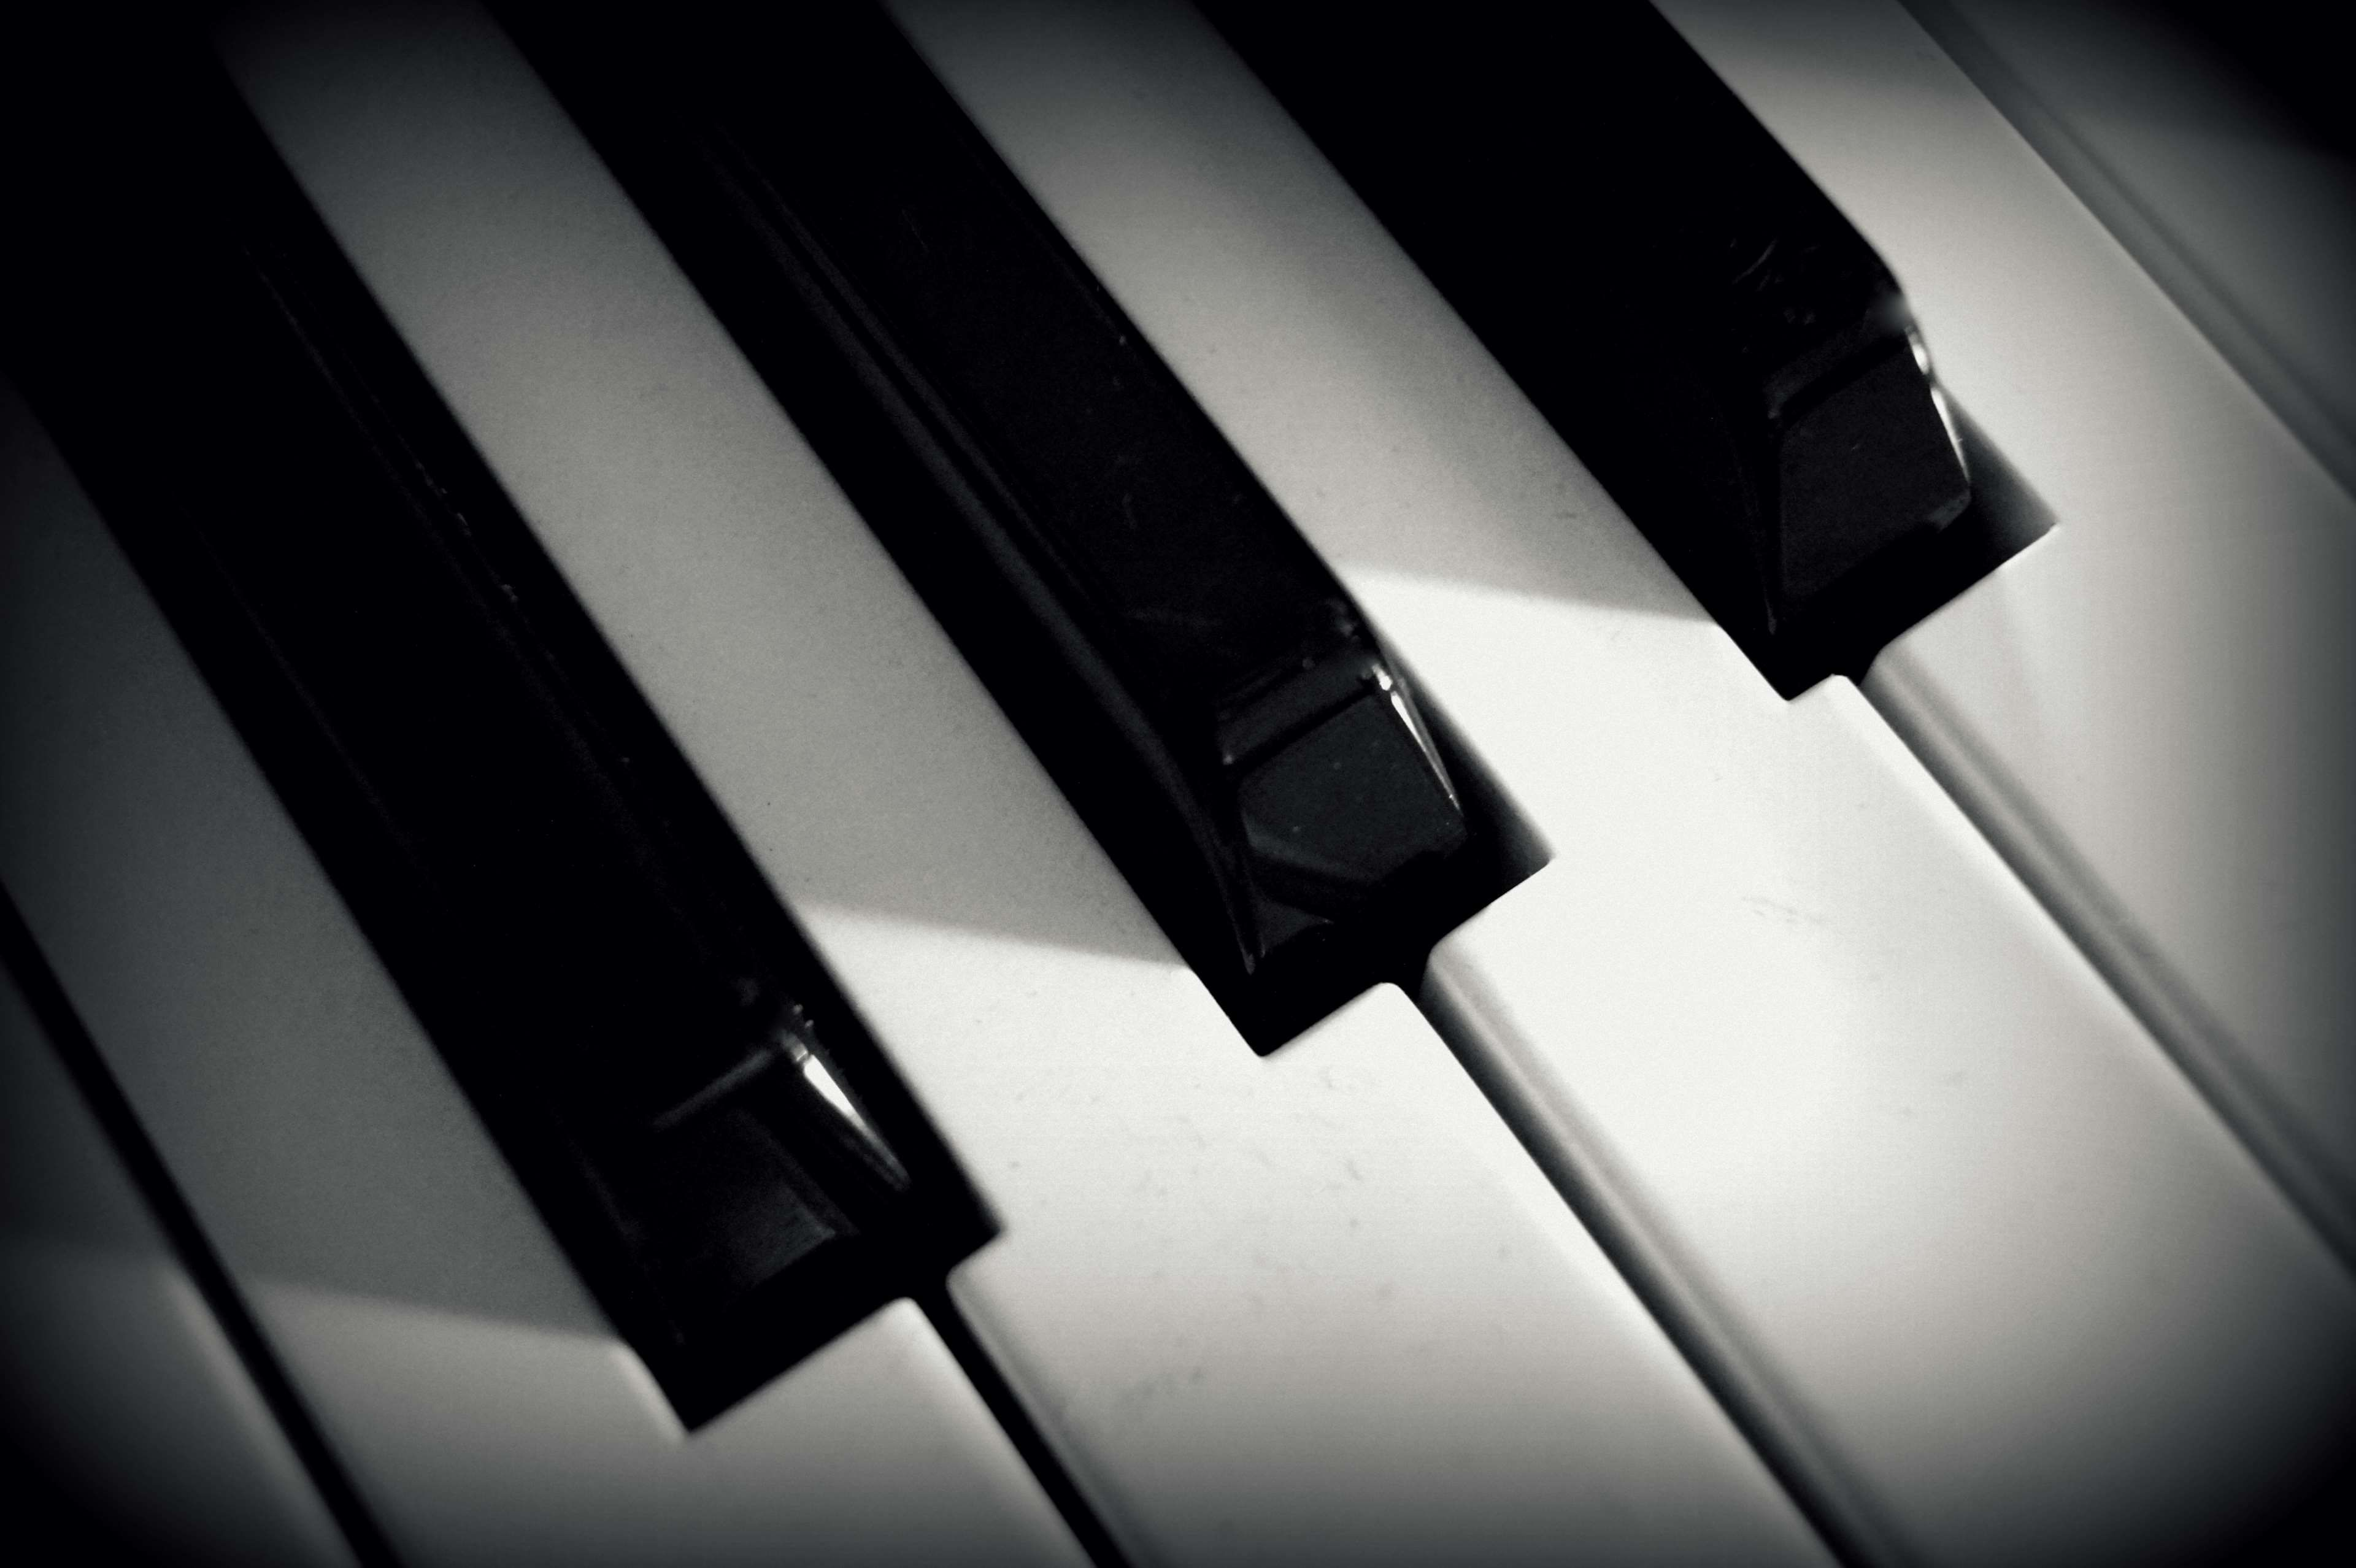 Black And White Close Up Keyboard Keys Musical Instrument Piano Piano Instruments Musicals